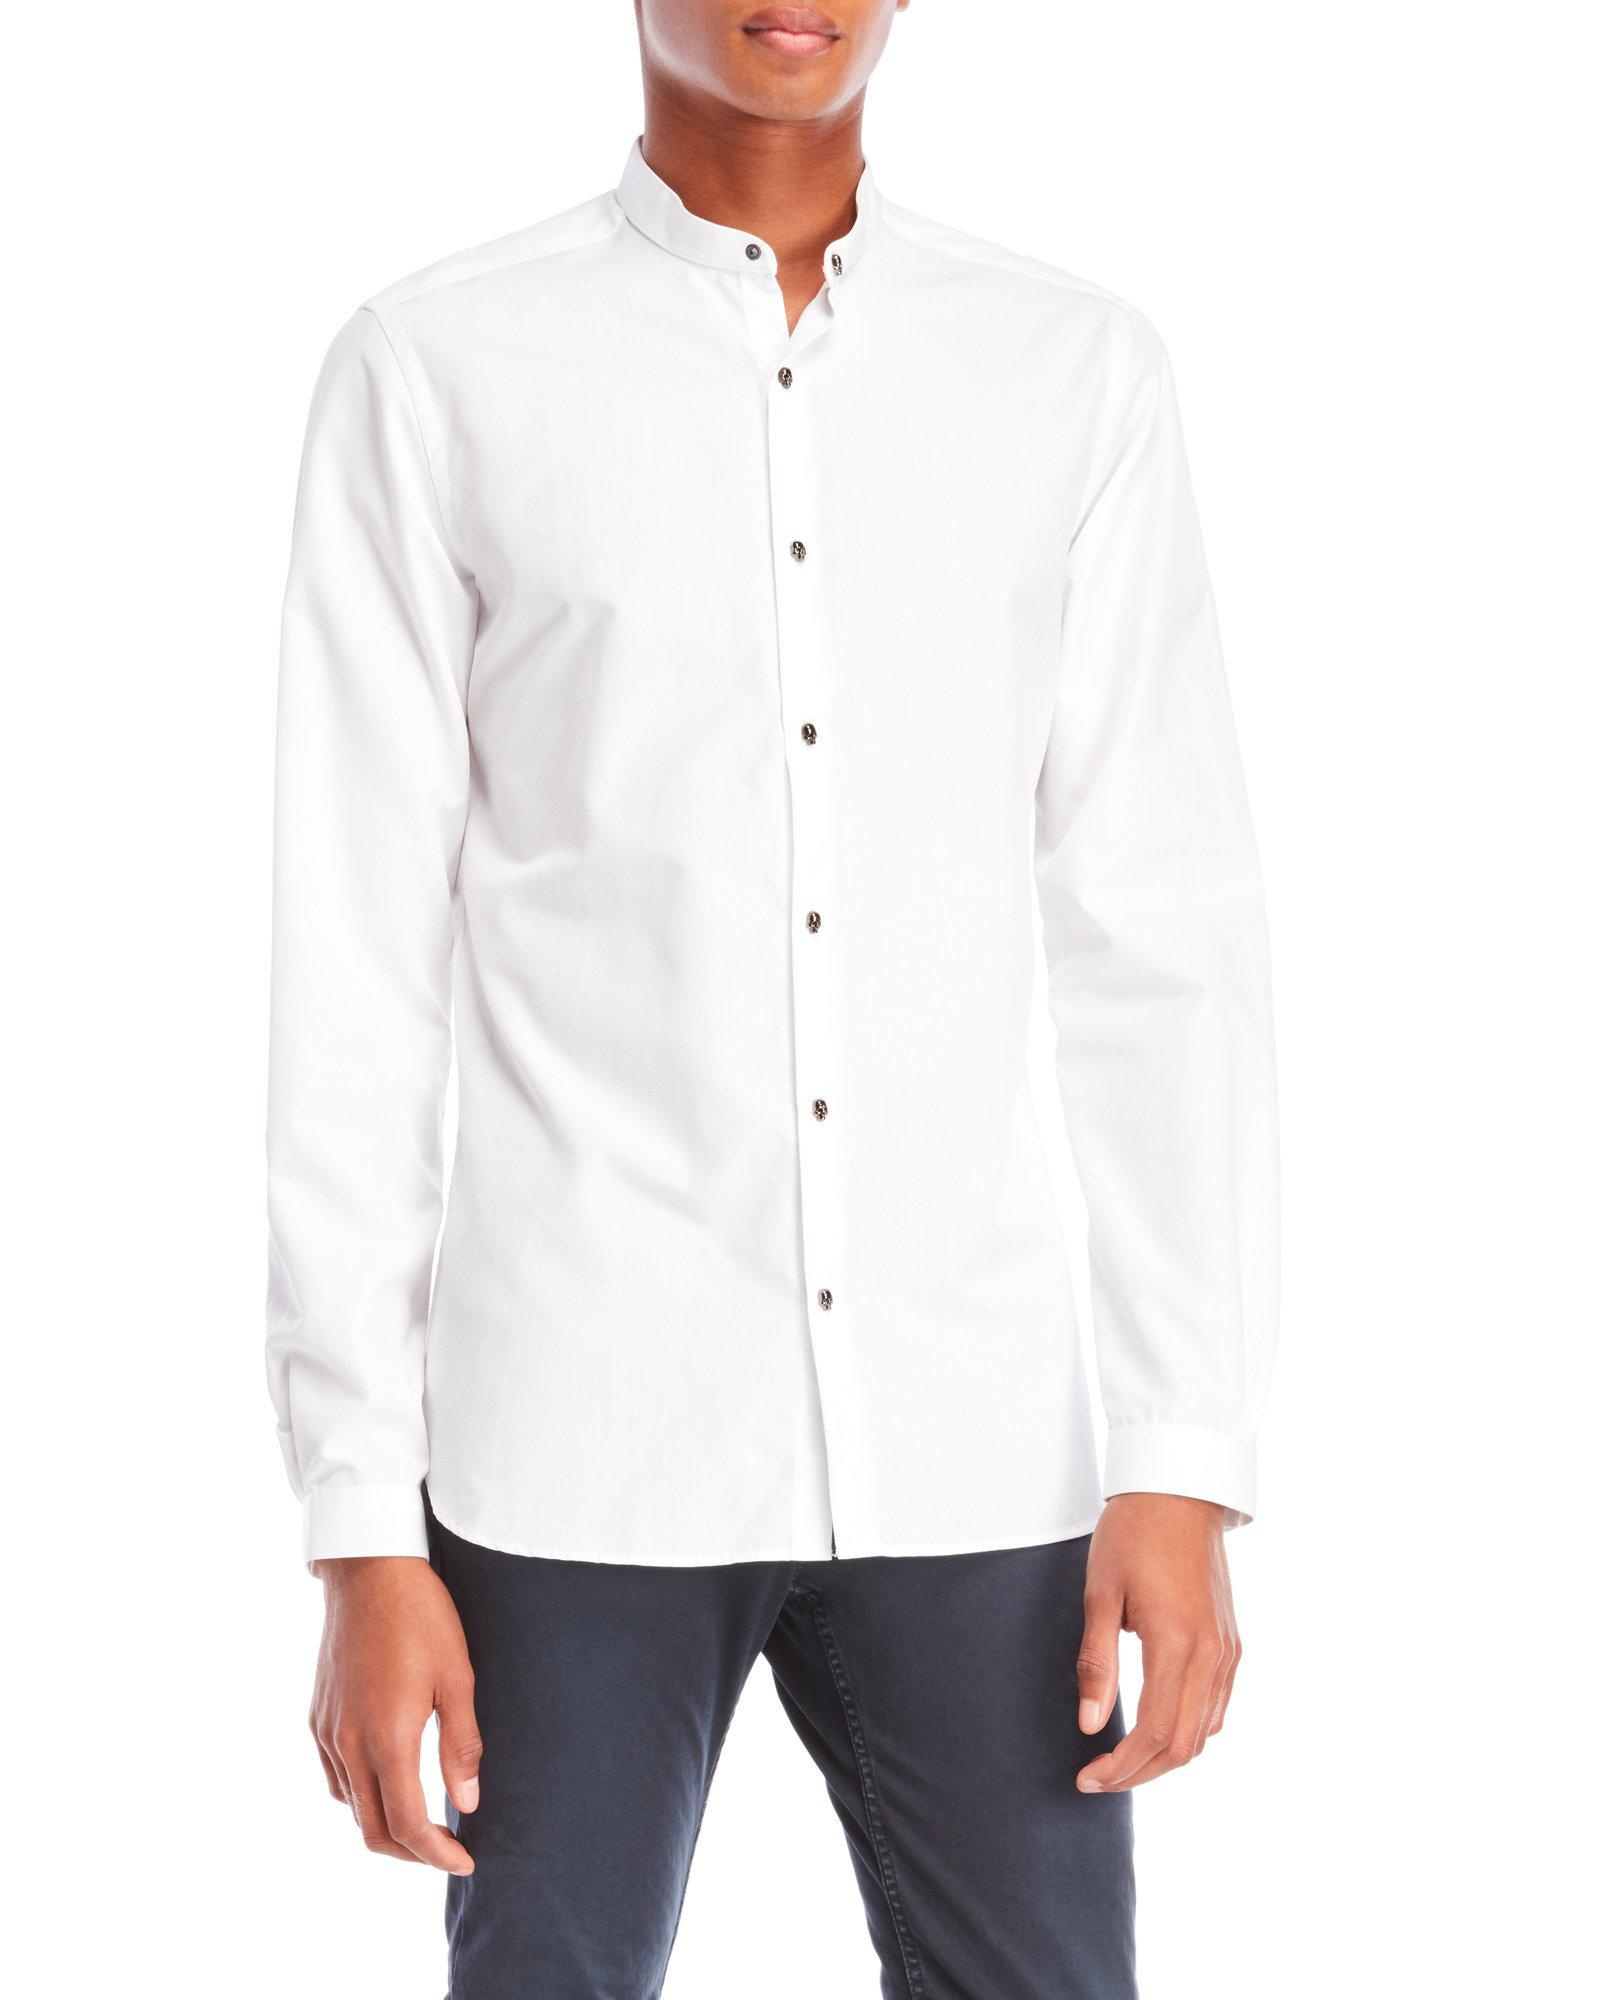 b735254eab The Kooples Skull Button Fitted Shirt in White for Men - Lyst